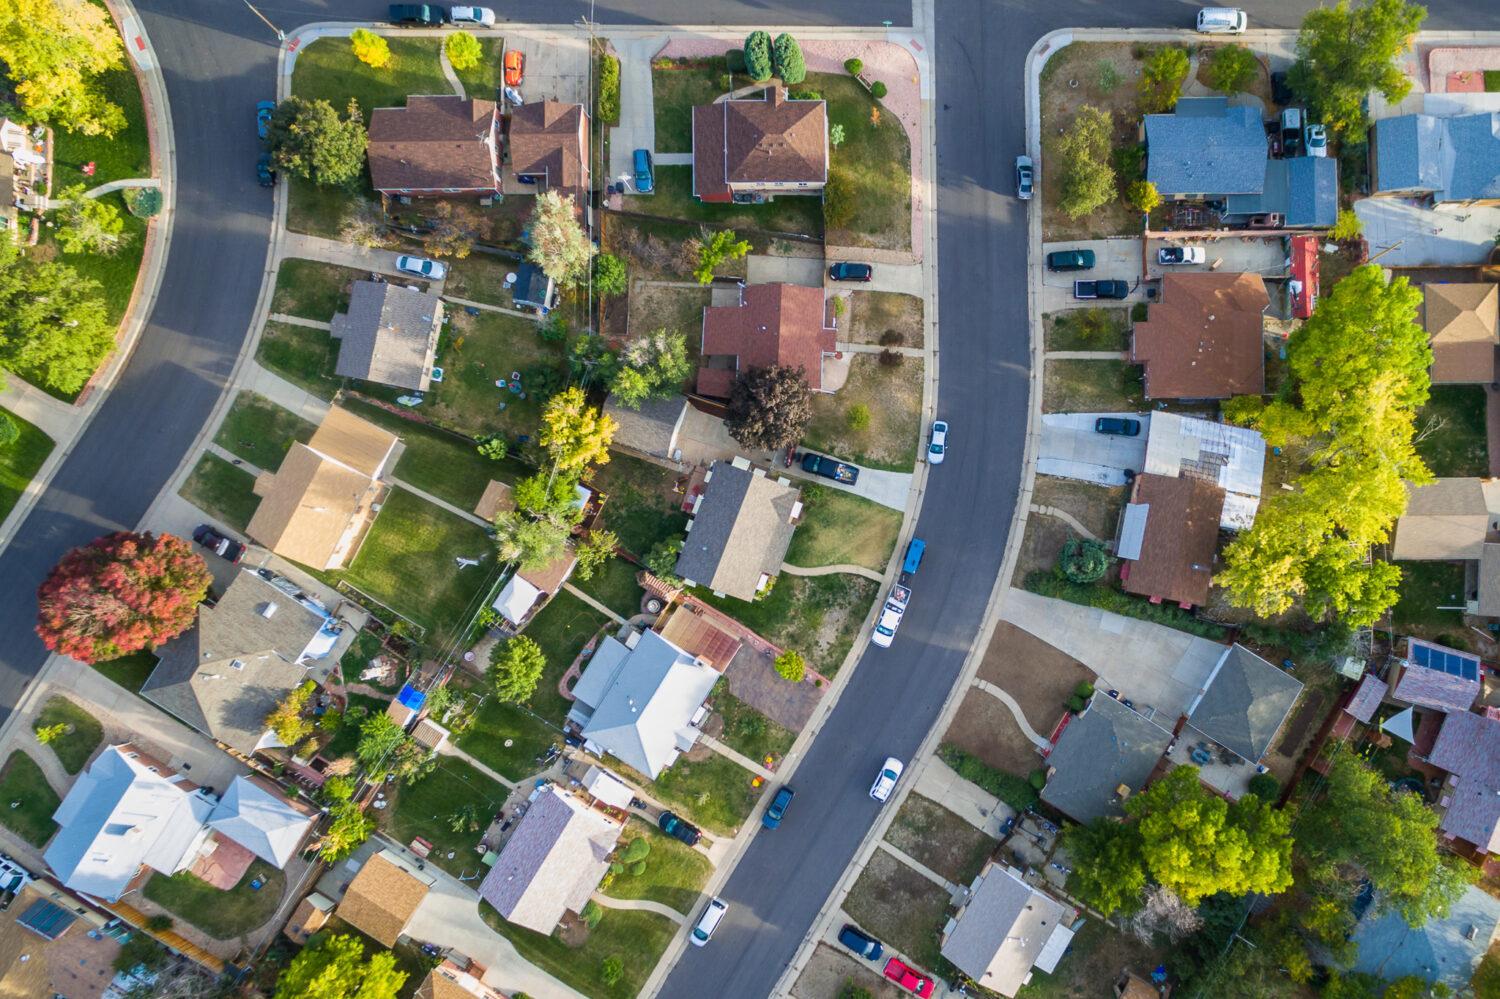 Image description: Aerial view of residential neighborhood in the Autumn.